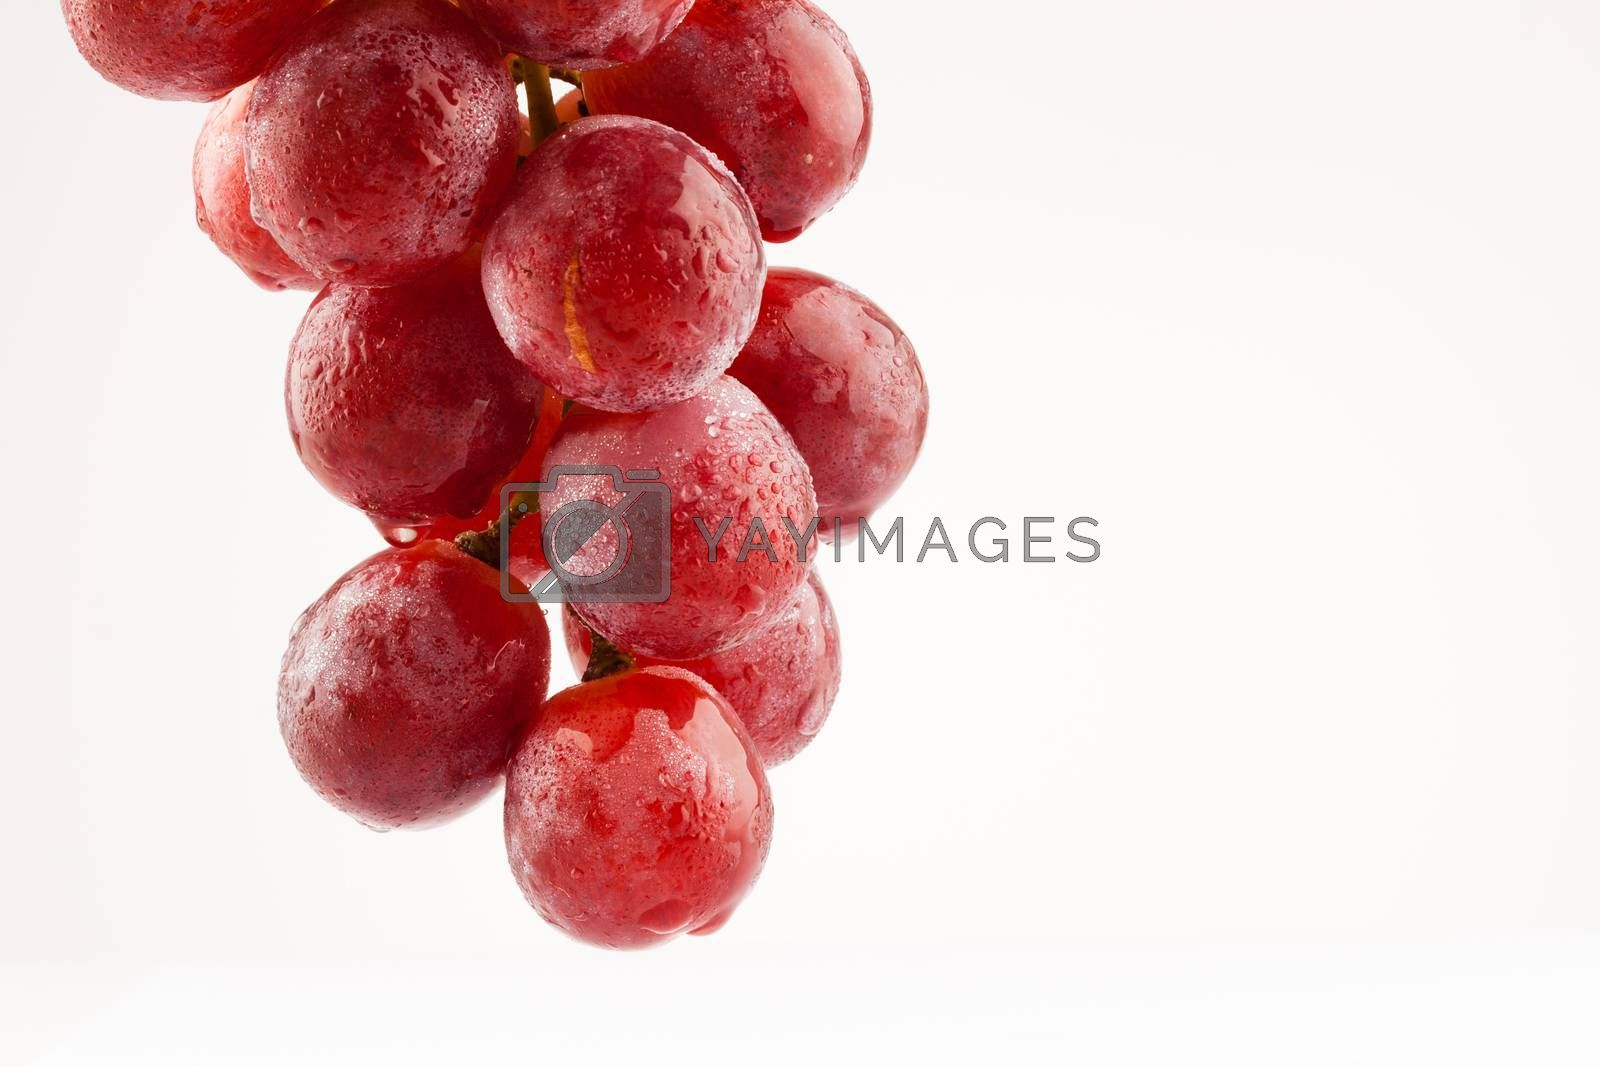 Royalty free image of grapes by furo_felix